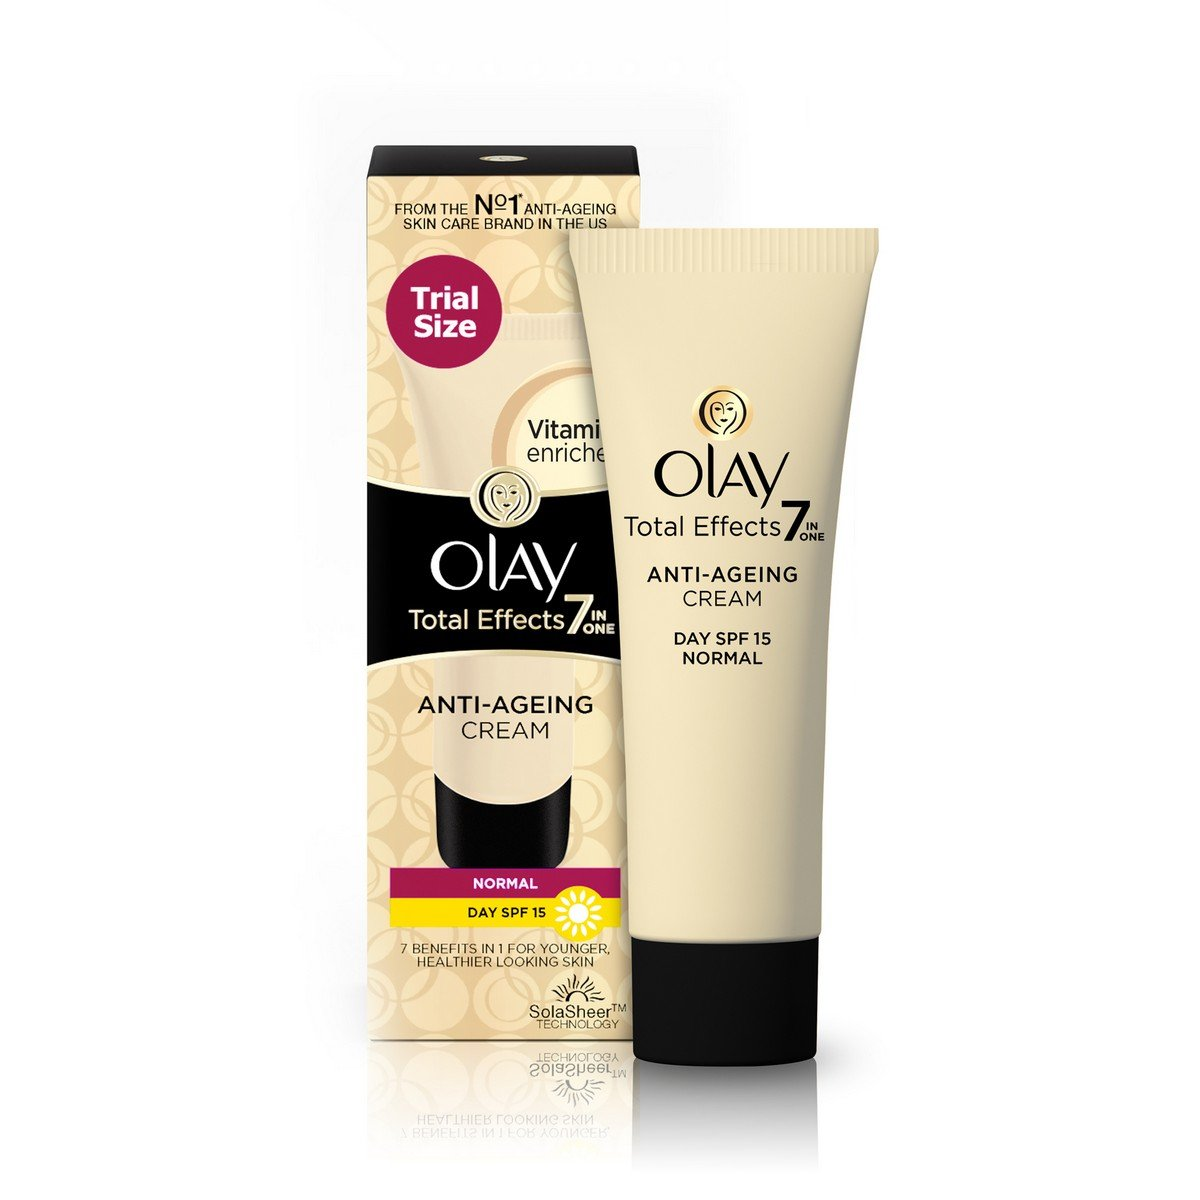 Olay Total Effects 7 In 1 Anti Ageing Skin Cream Moisturizer Normal Spf 15 8g Buy Online In Burkina Faso Olay Products In Burkina Faso See Prices Reviews And Free Delivery Over 40 000 Cfa Desertcart